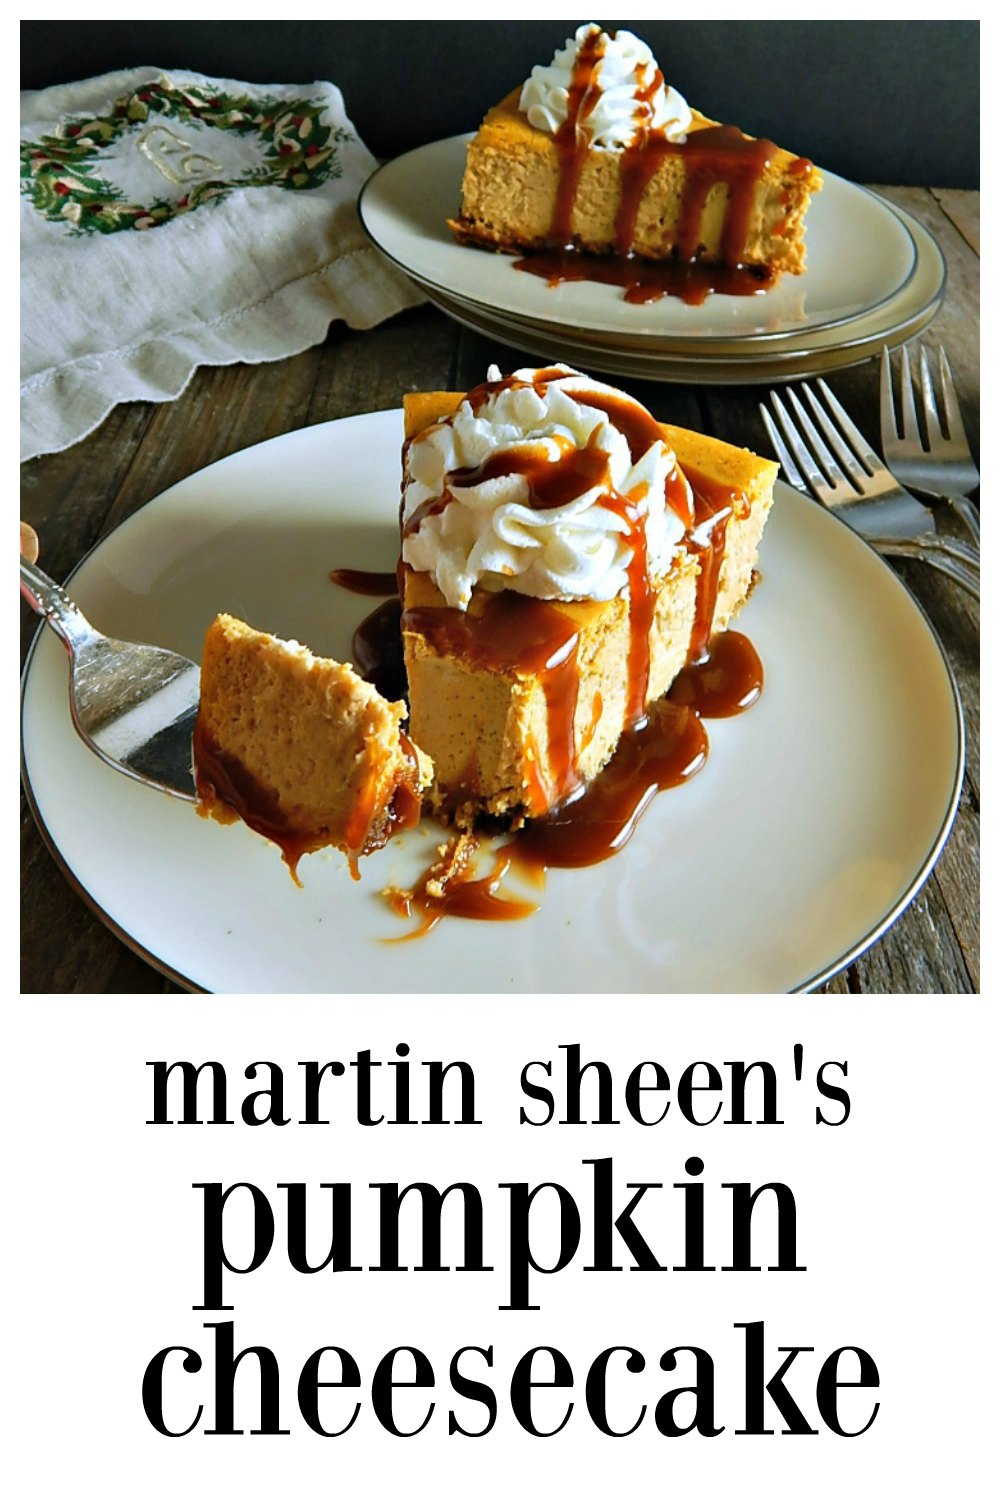 Martin Sheen's Pumpkin Cheesecake is spectacular. It's a high, firm, mellow cheesecake, gently spiced & it looks like the product of a fine bakery; the recipe comes from Sheen's daughter who was a pastry chef. Straightforward & easy to make and feeds 12 - 16, you'll be a hero when you bring this to the table! #MartinSheensPumpkinCheescake #PumpkinCheesecake #BestPumpkinCheesecake #EasyPumpkinCheesecake